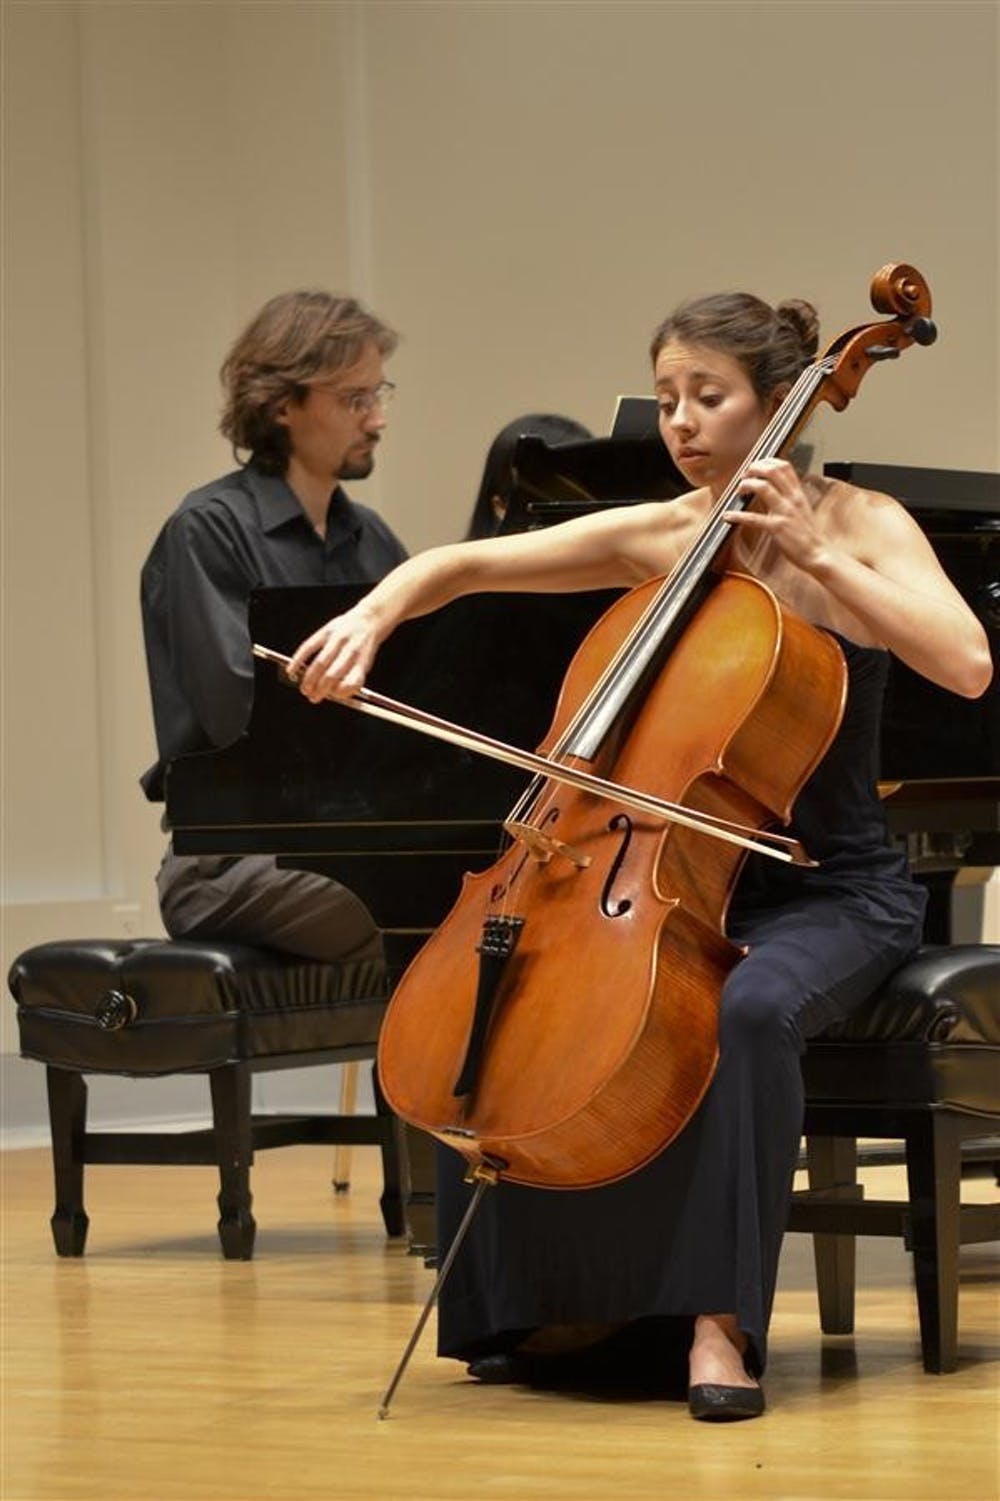 Junior Lia Kohl performs Robert Schumann's Fantasiestucke, Op. 73 at her cello recital Monday in the Ford-Crawford Recital Hall. Kohl was accompanied by painist Aleksey Aremyev, and performed pieces by Johann Sebastian Bach and Cesar Franck in addition to the Schumann composition.